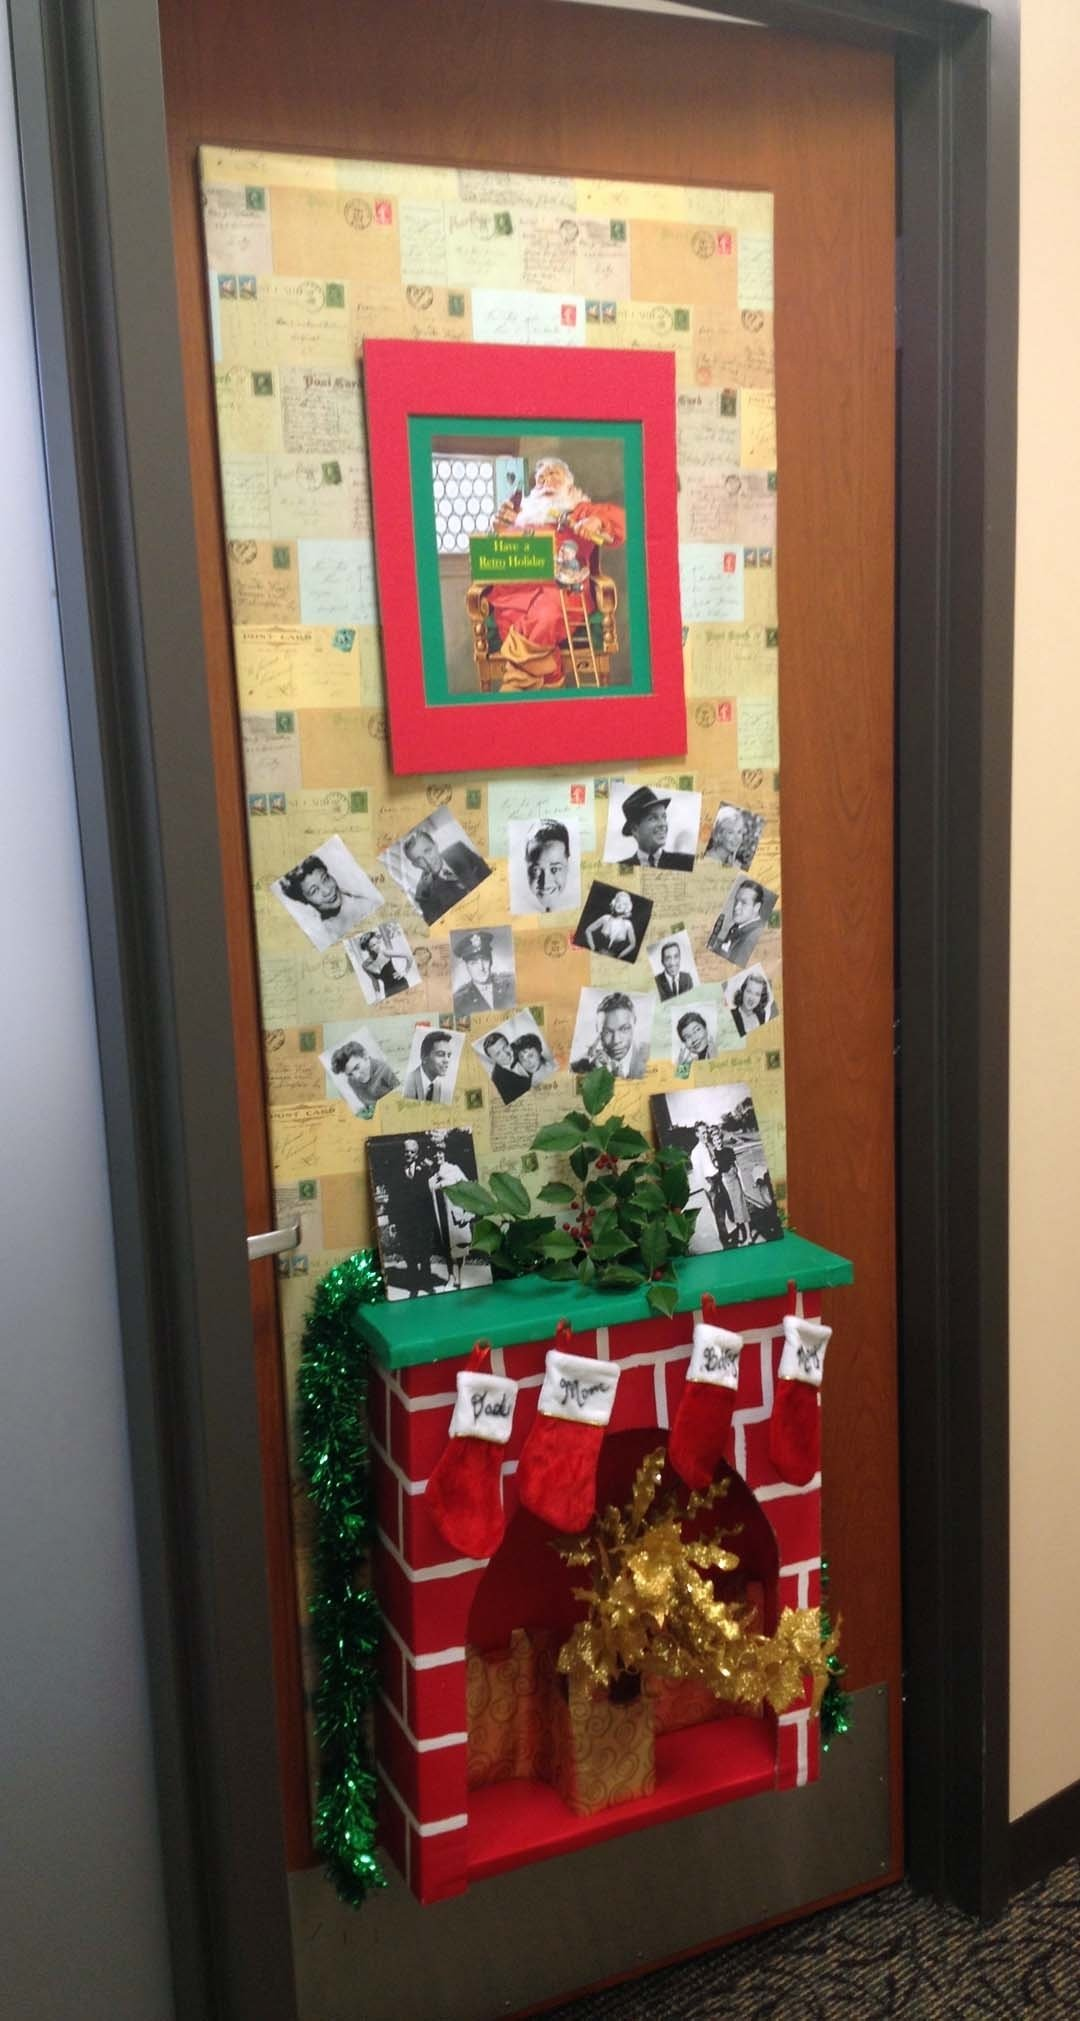 10 Most Recommended Christmas Door Decorating Contest Ideas decorating door decorating contest with xmas door decorations